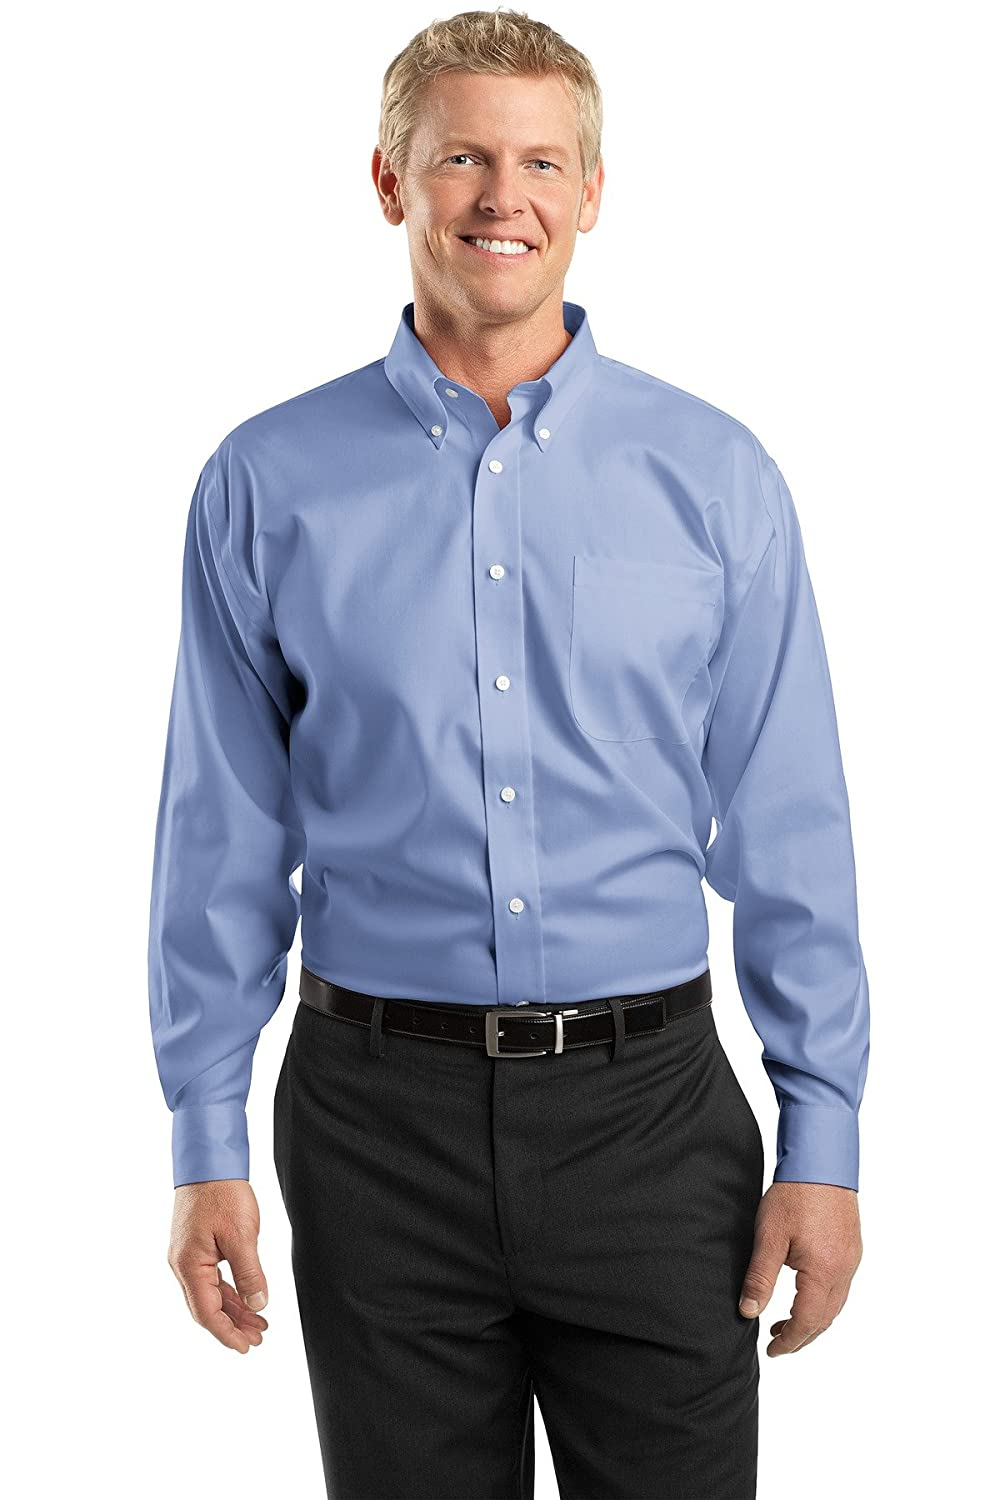 b8ac51e84c3 TLRH24 This shirt blends the impeccable appearance of 100% non-iron cotton  with the polish of pinpoint oxford. Two-ply 80-doubles yarn for strength ...